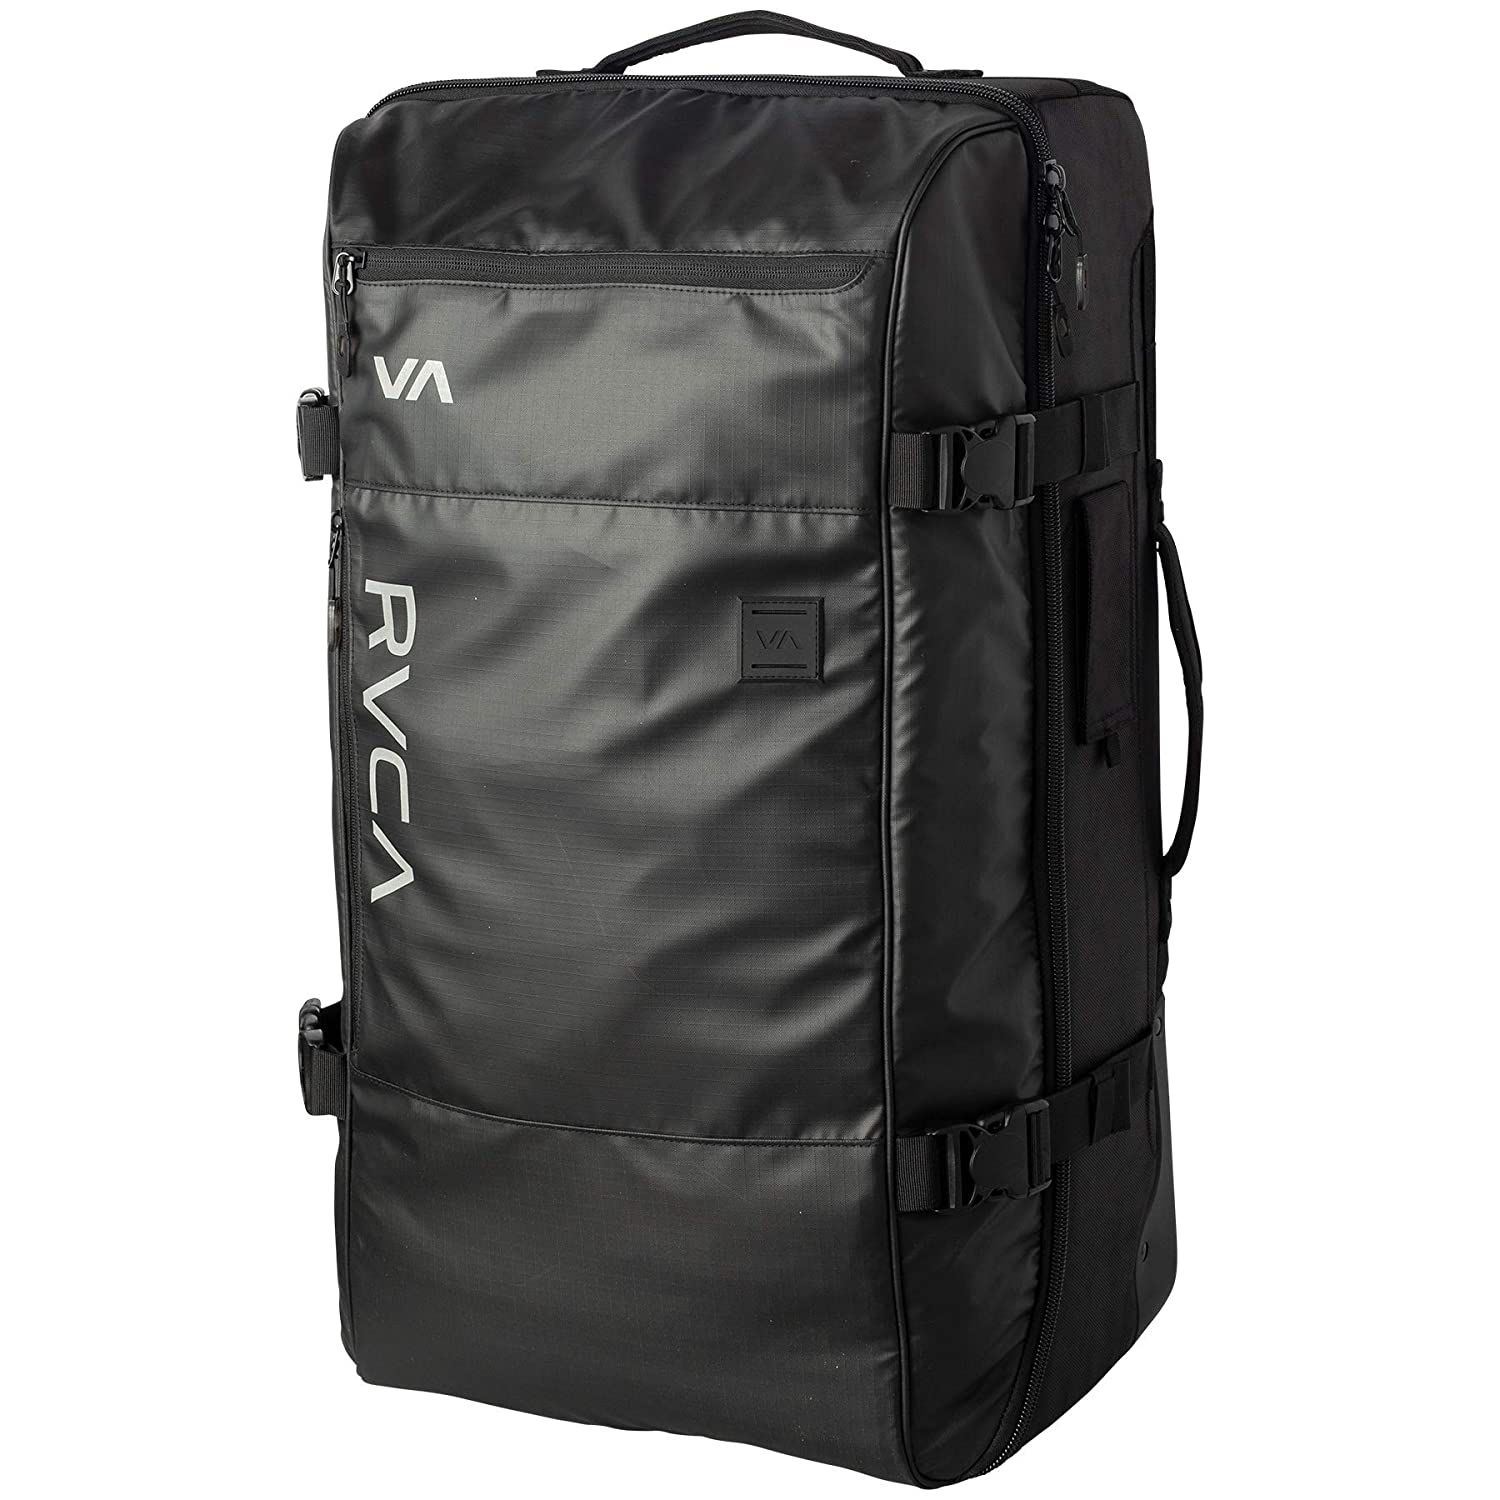 Image of RVCA Men's Eastern Large Roller Luggage Travel Bag, Black, ONE SIZE Luggage